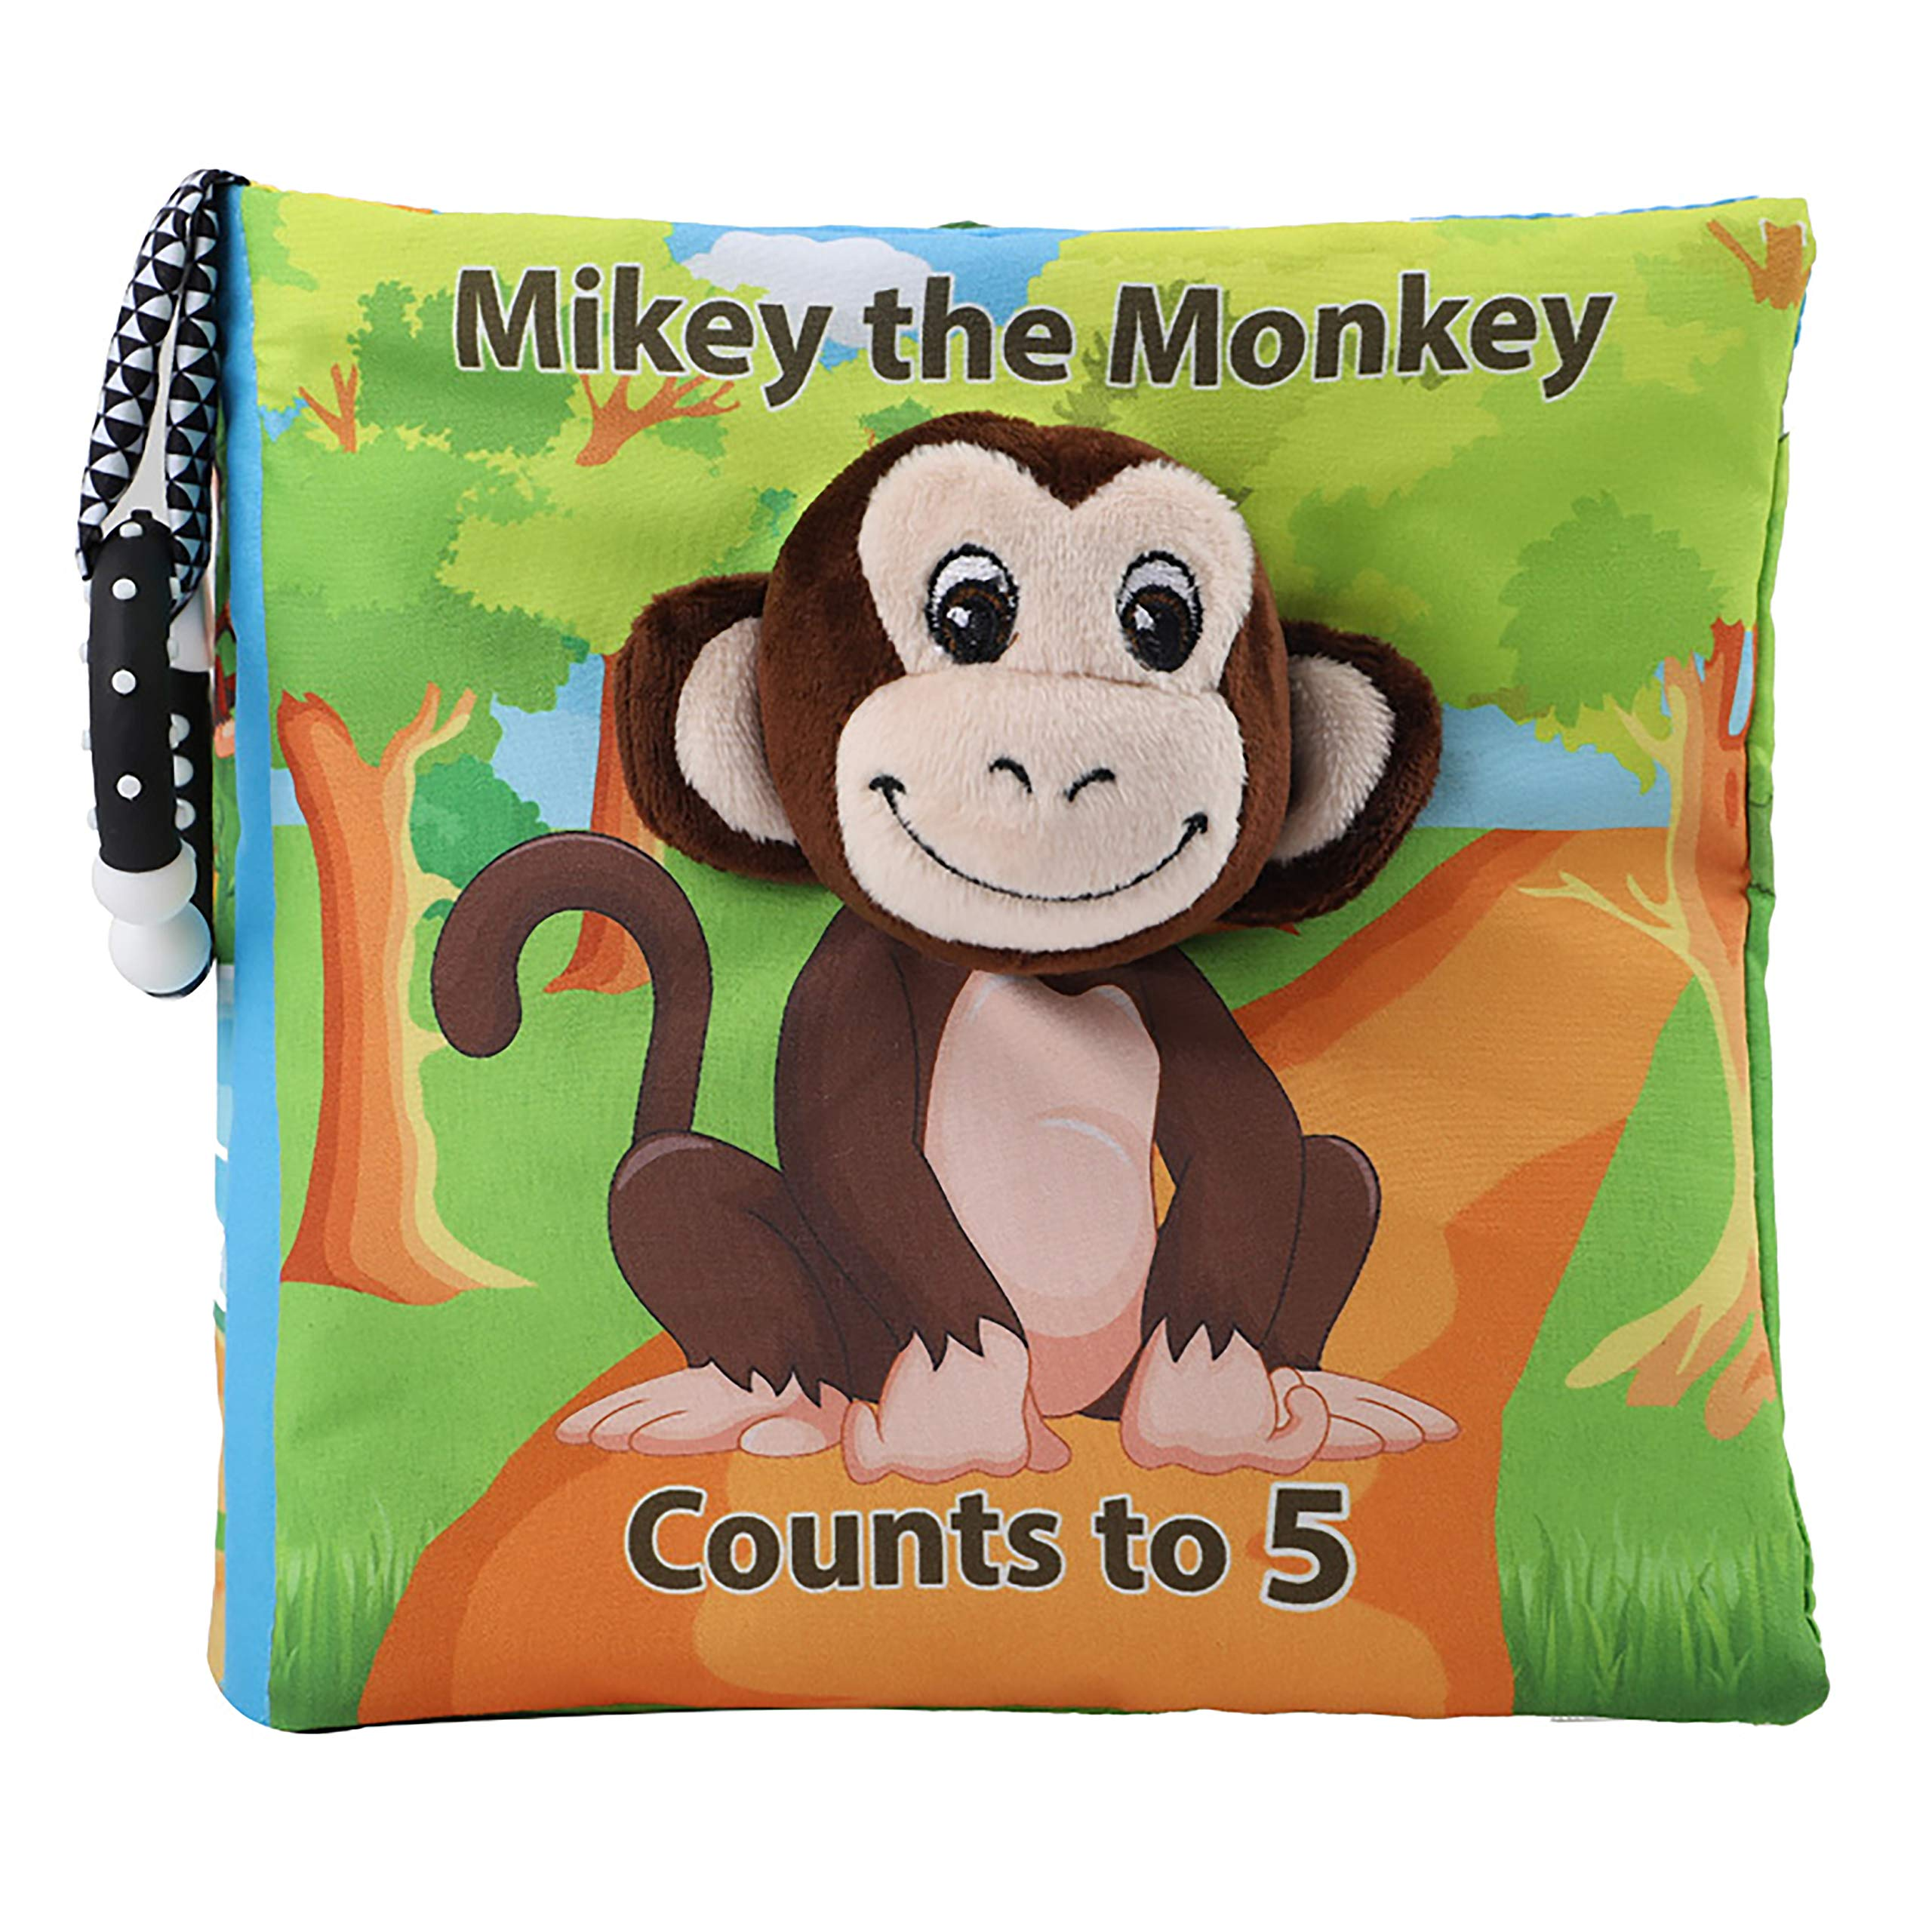 Tinzy Toys Mikey The Monkey Counts to 5 - Cute Monkey Baby Book - Cloth Baby Book with Soft, Crinkle and Vibrant Pages - 3D Pages, Mesmerizing Mirror, Teething Ring, and More